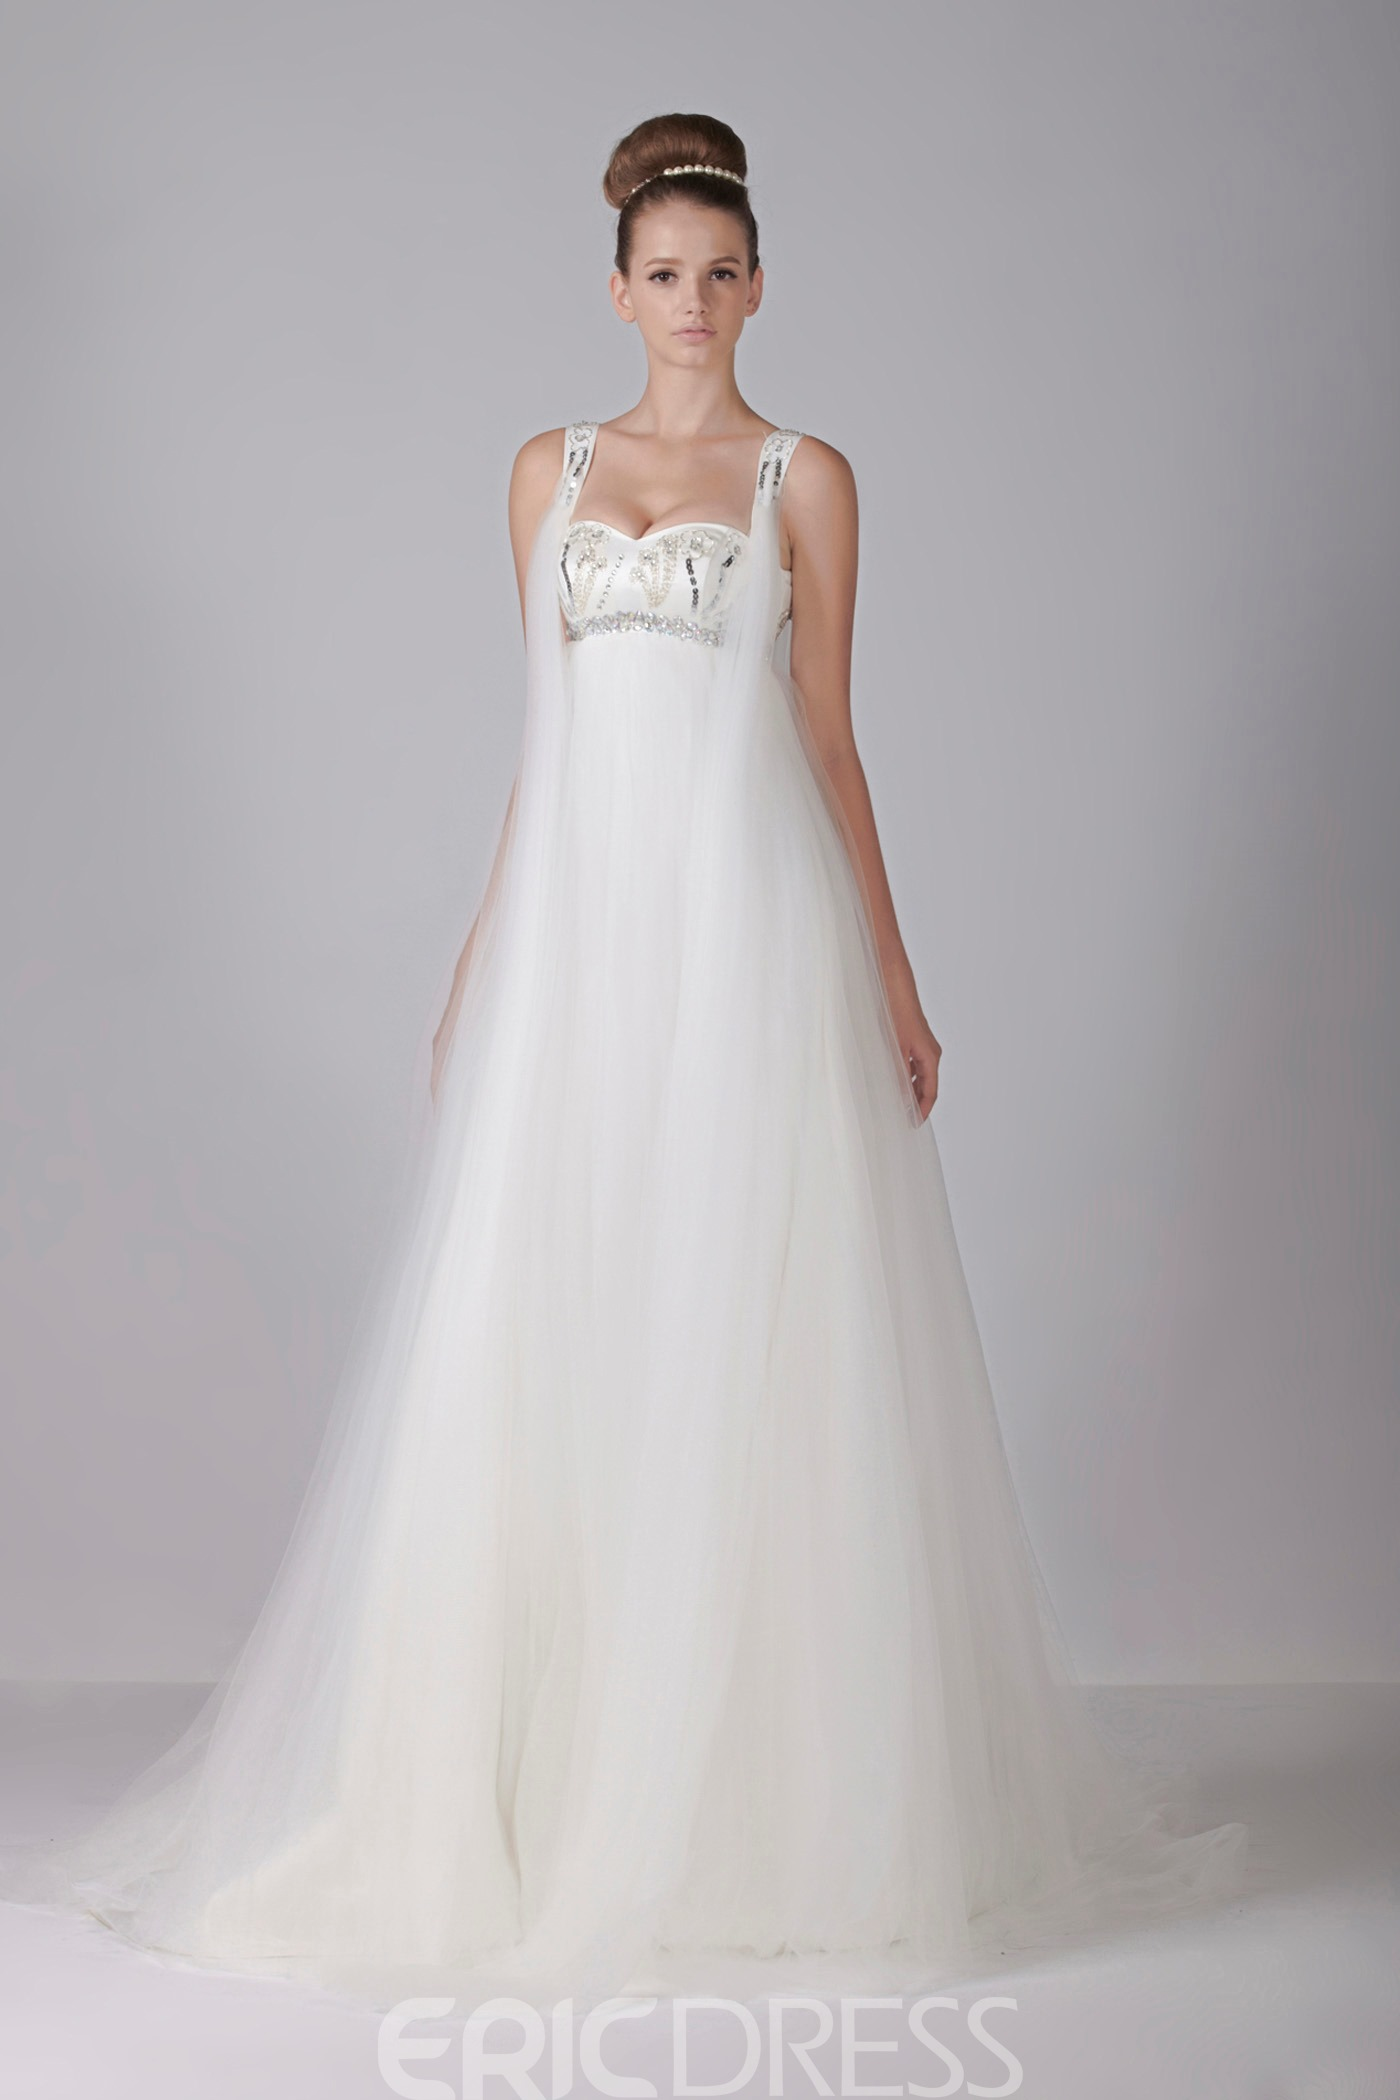 Cheap Unique Wedding Dresses & Gowns Online Sale - Ericdress.com